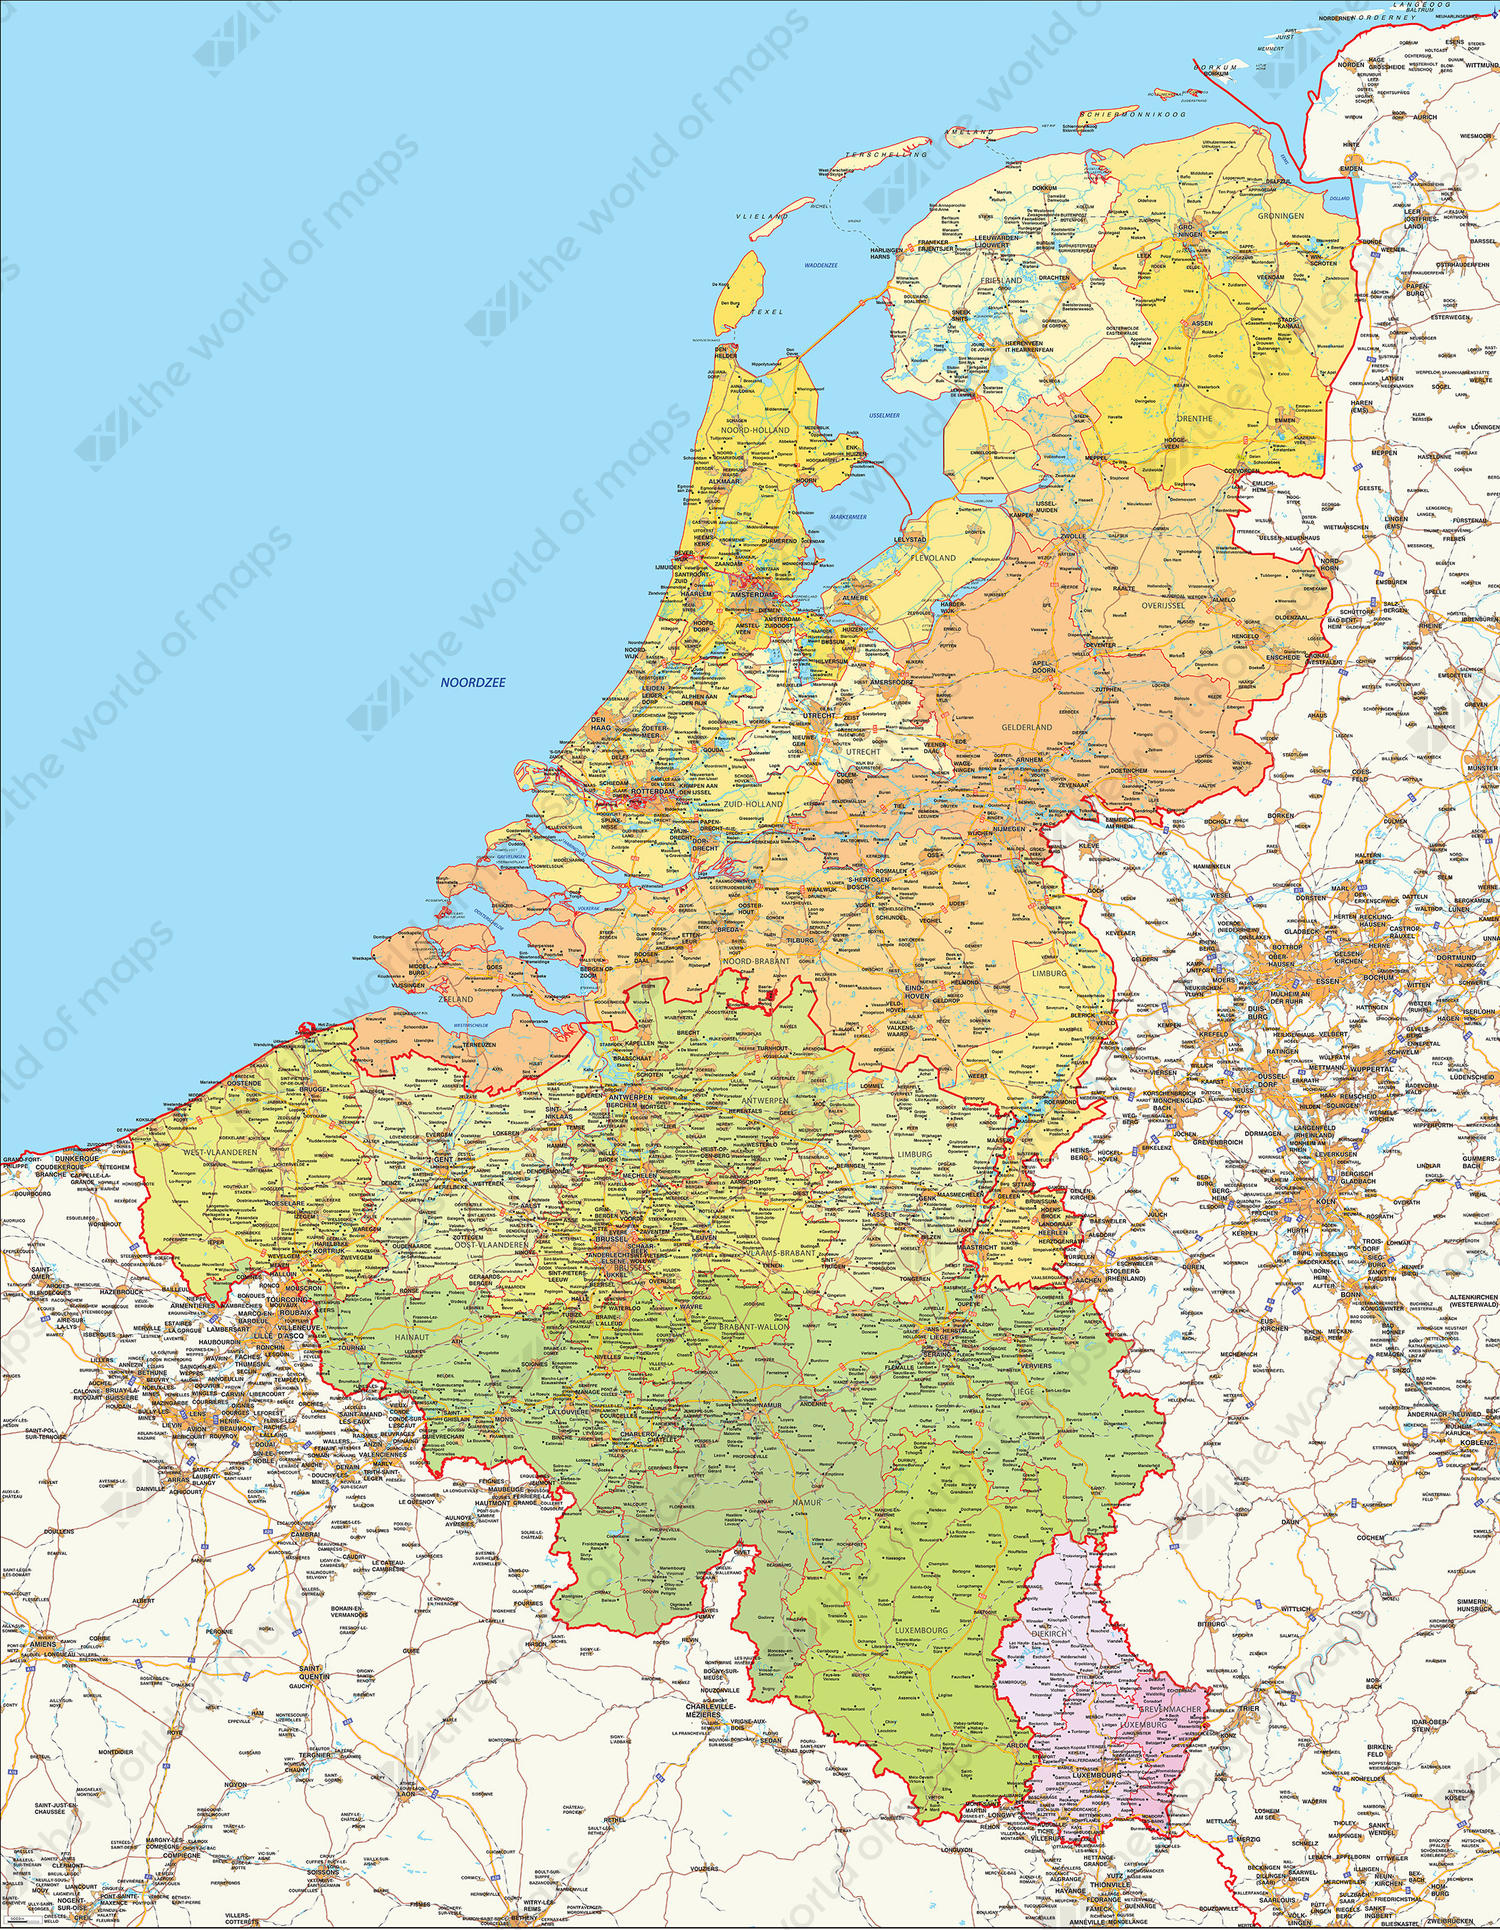 Detailed Digital Map Benelux 336 | The World of Maps.com on